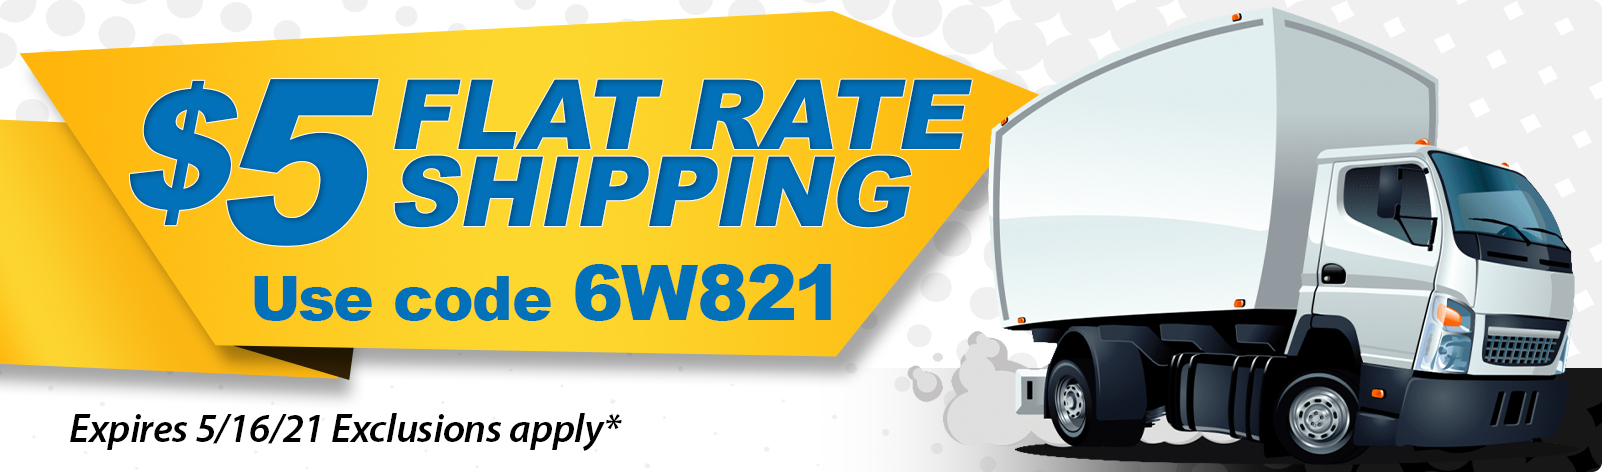 $5 Flat Rate Shipping!